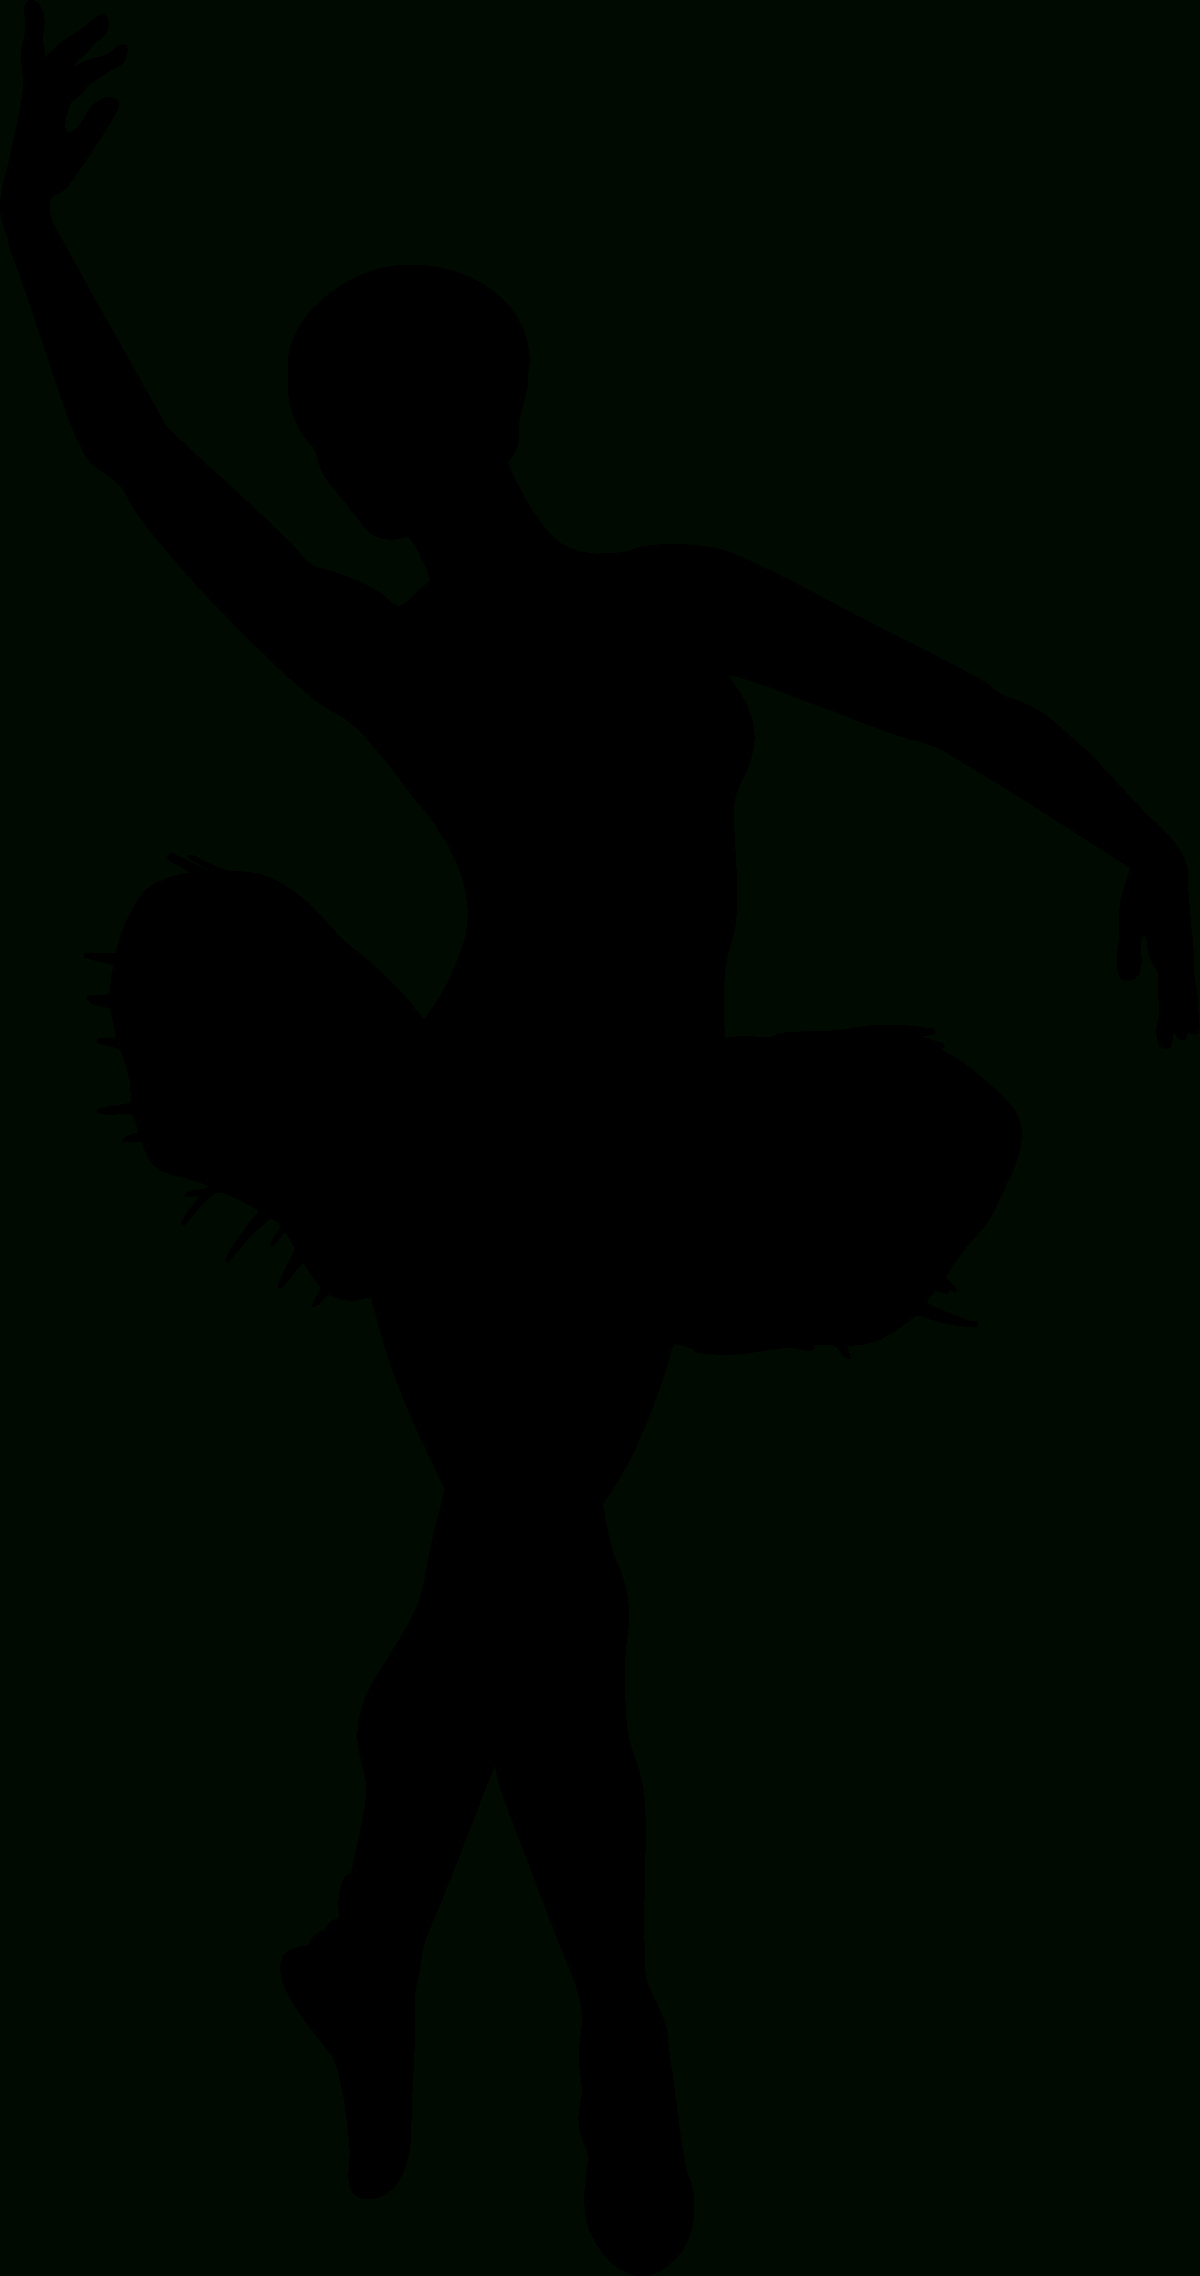 Free Ballet Silhouette Cliparts, Download Free Clip Art, Free Clip - Free Printable Ballerina Silhouette